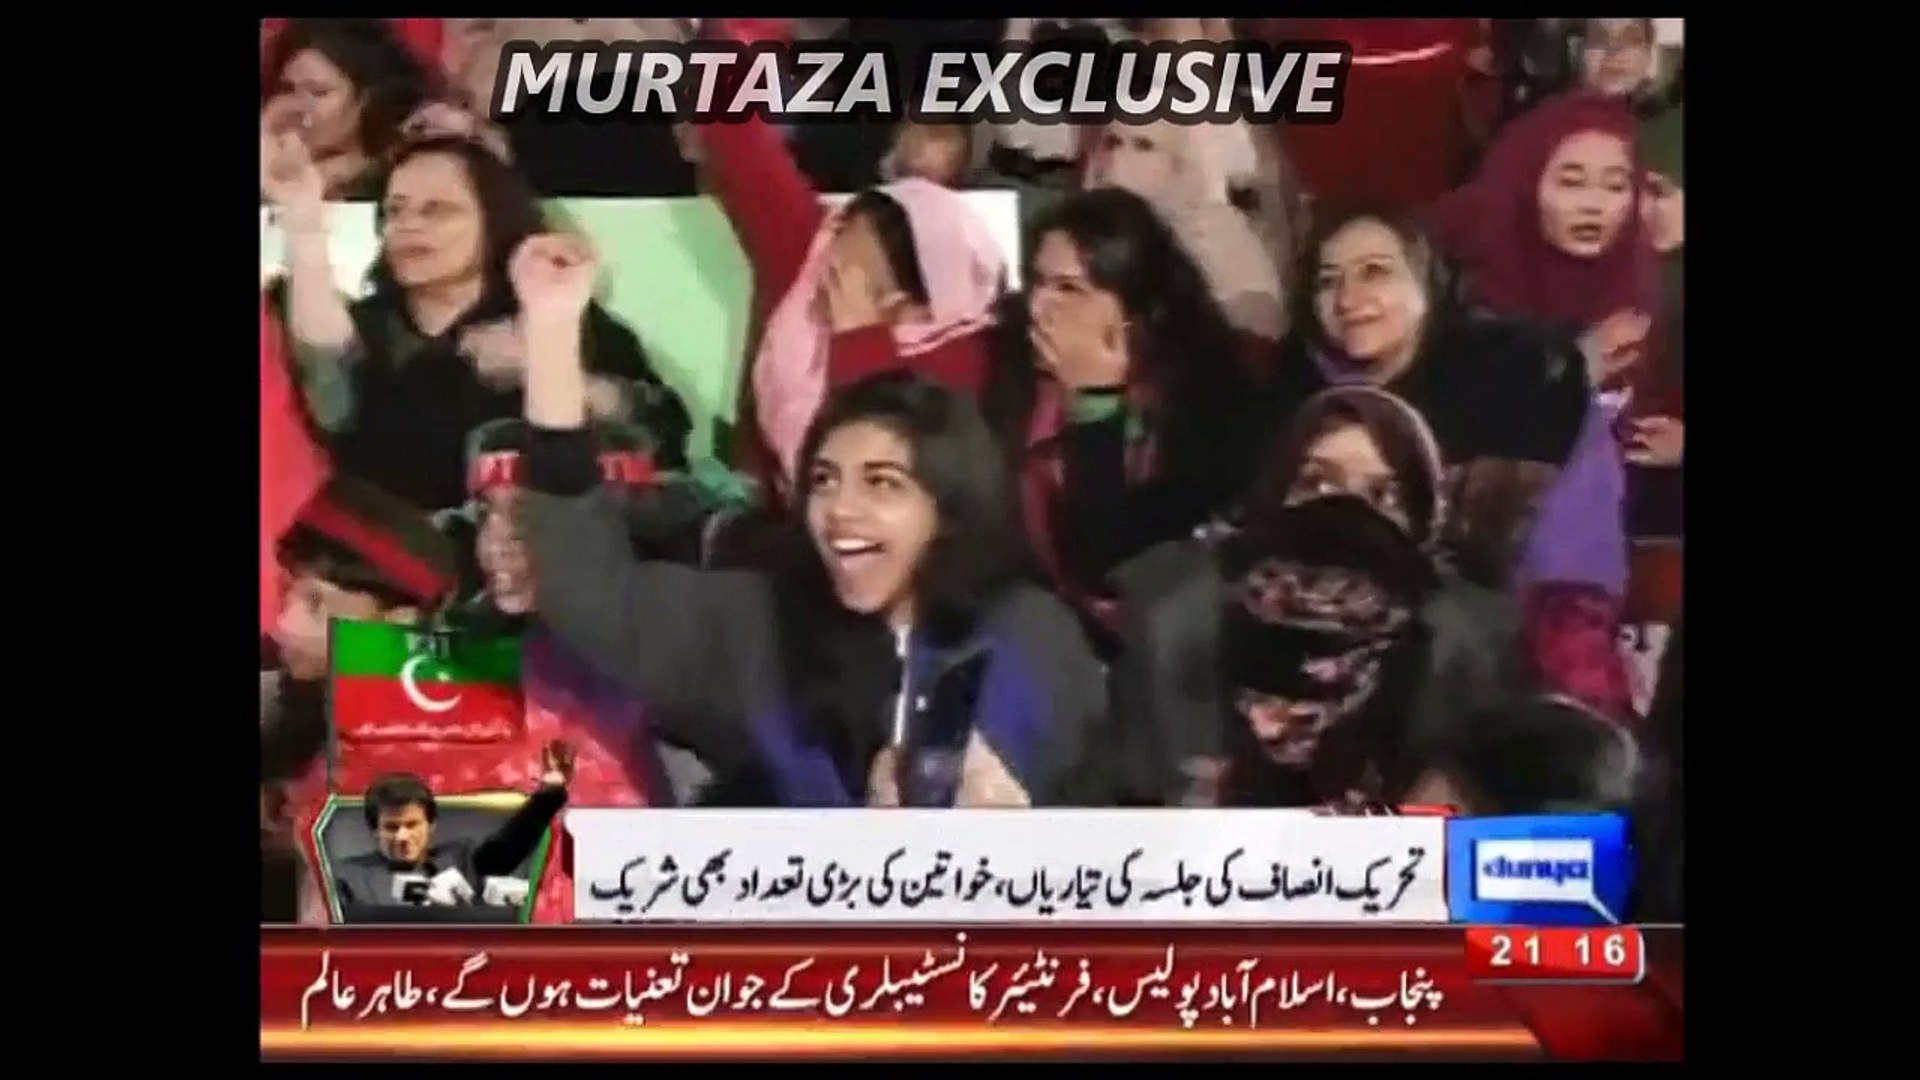 Beautiful Anchor Interview by Beautiful Girls ᴴᴰ Before 30 November  Imran Khan Pti Jalsa  (EXCLUSIV